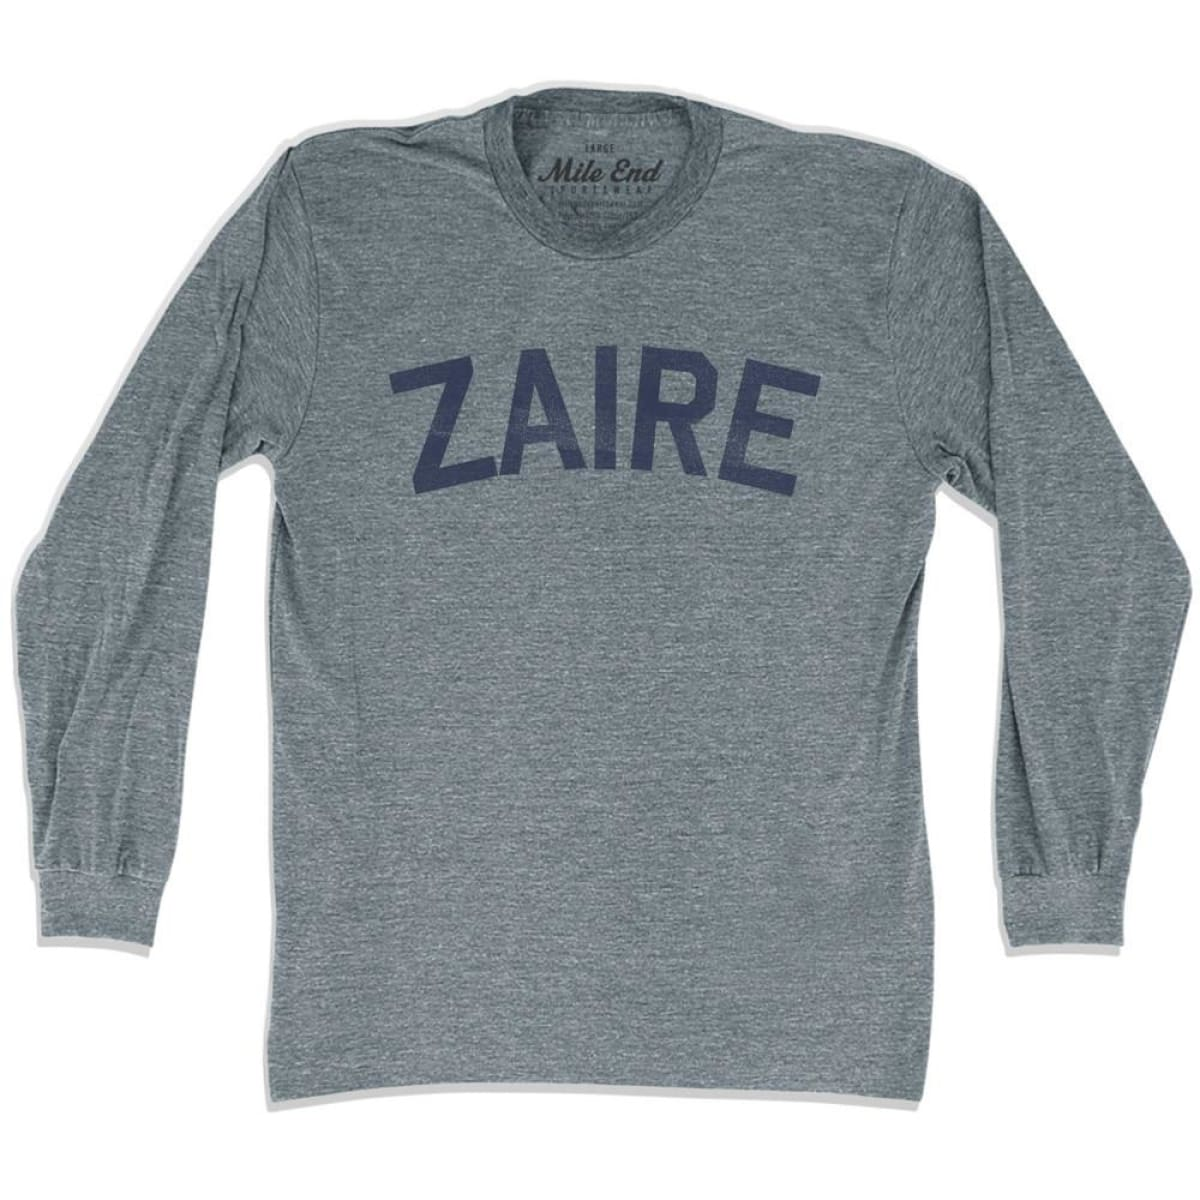 Zaire City Vintage Long Sleeve T-shirt - Athletic Grey / Adult X-Small - Mile End City